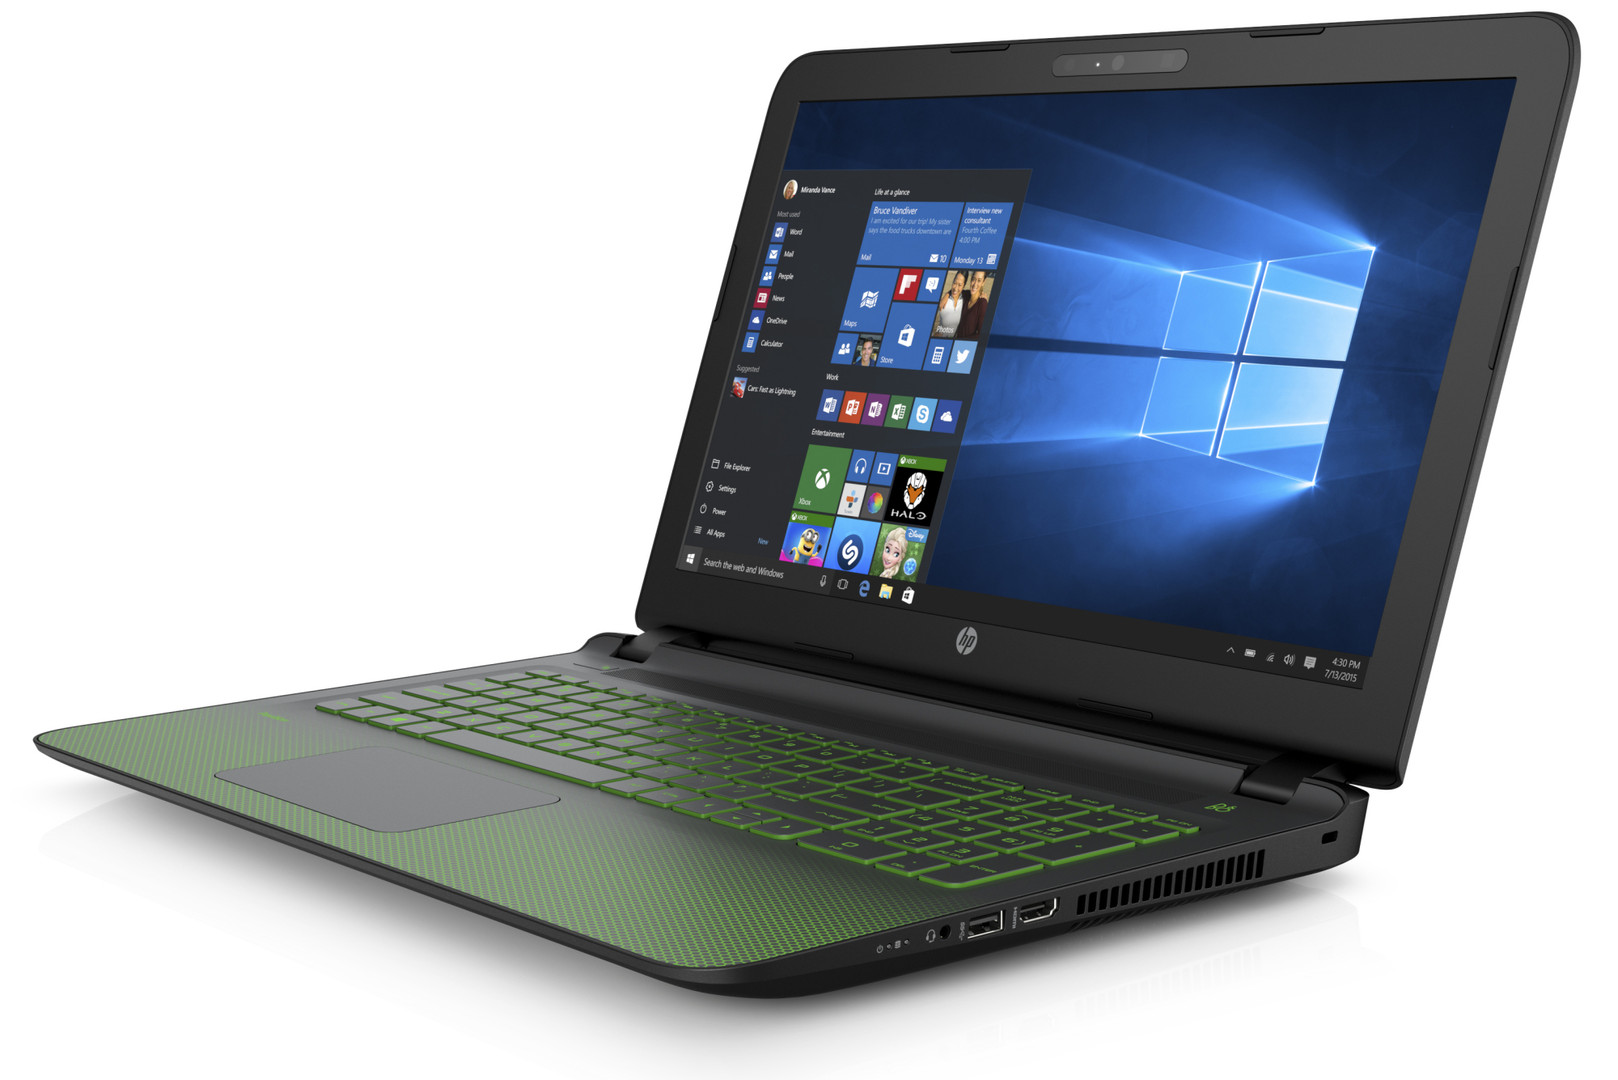 hp pavilion 15 i7 6700hq gtx 950m notebook review reviews. Black Bedroom Furniture Sets. Home Design Ideas